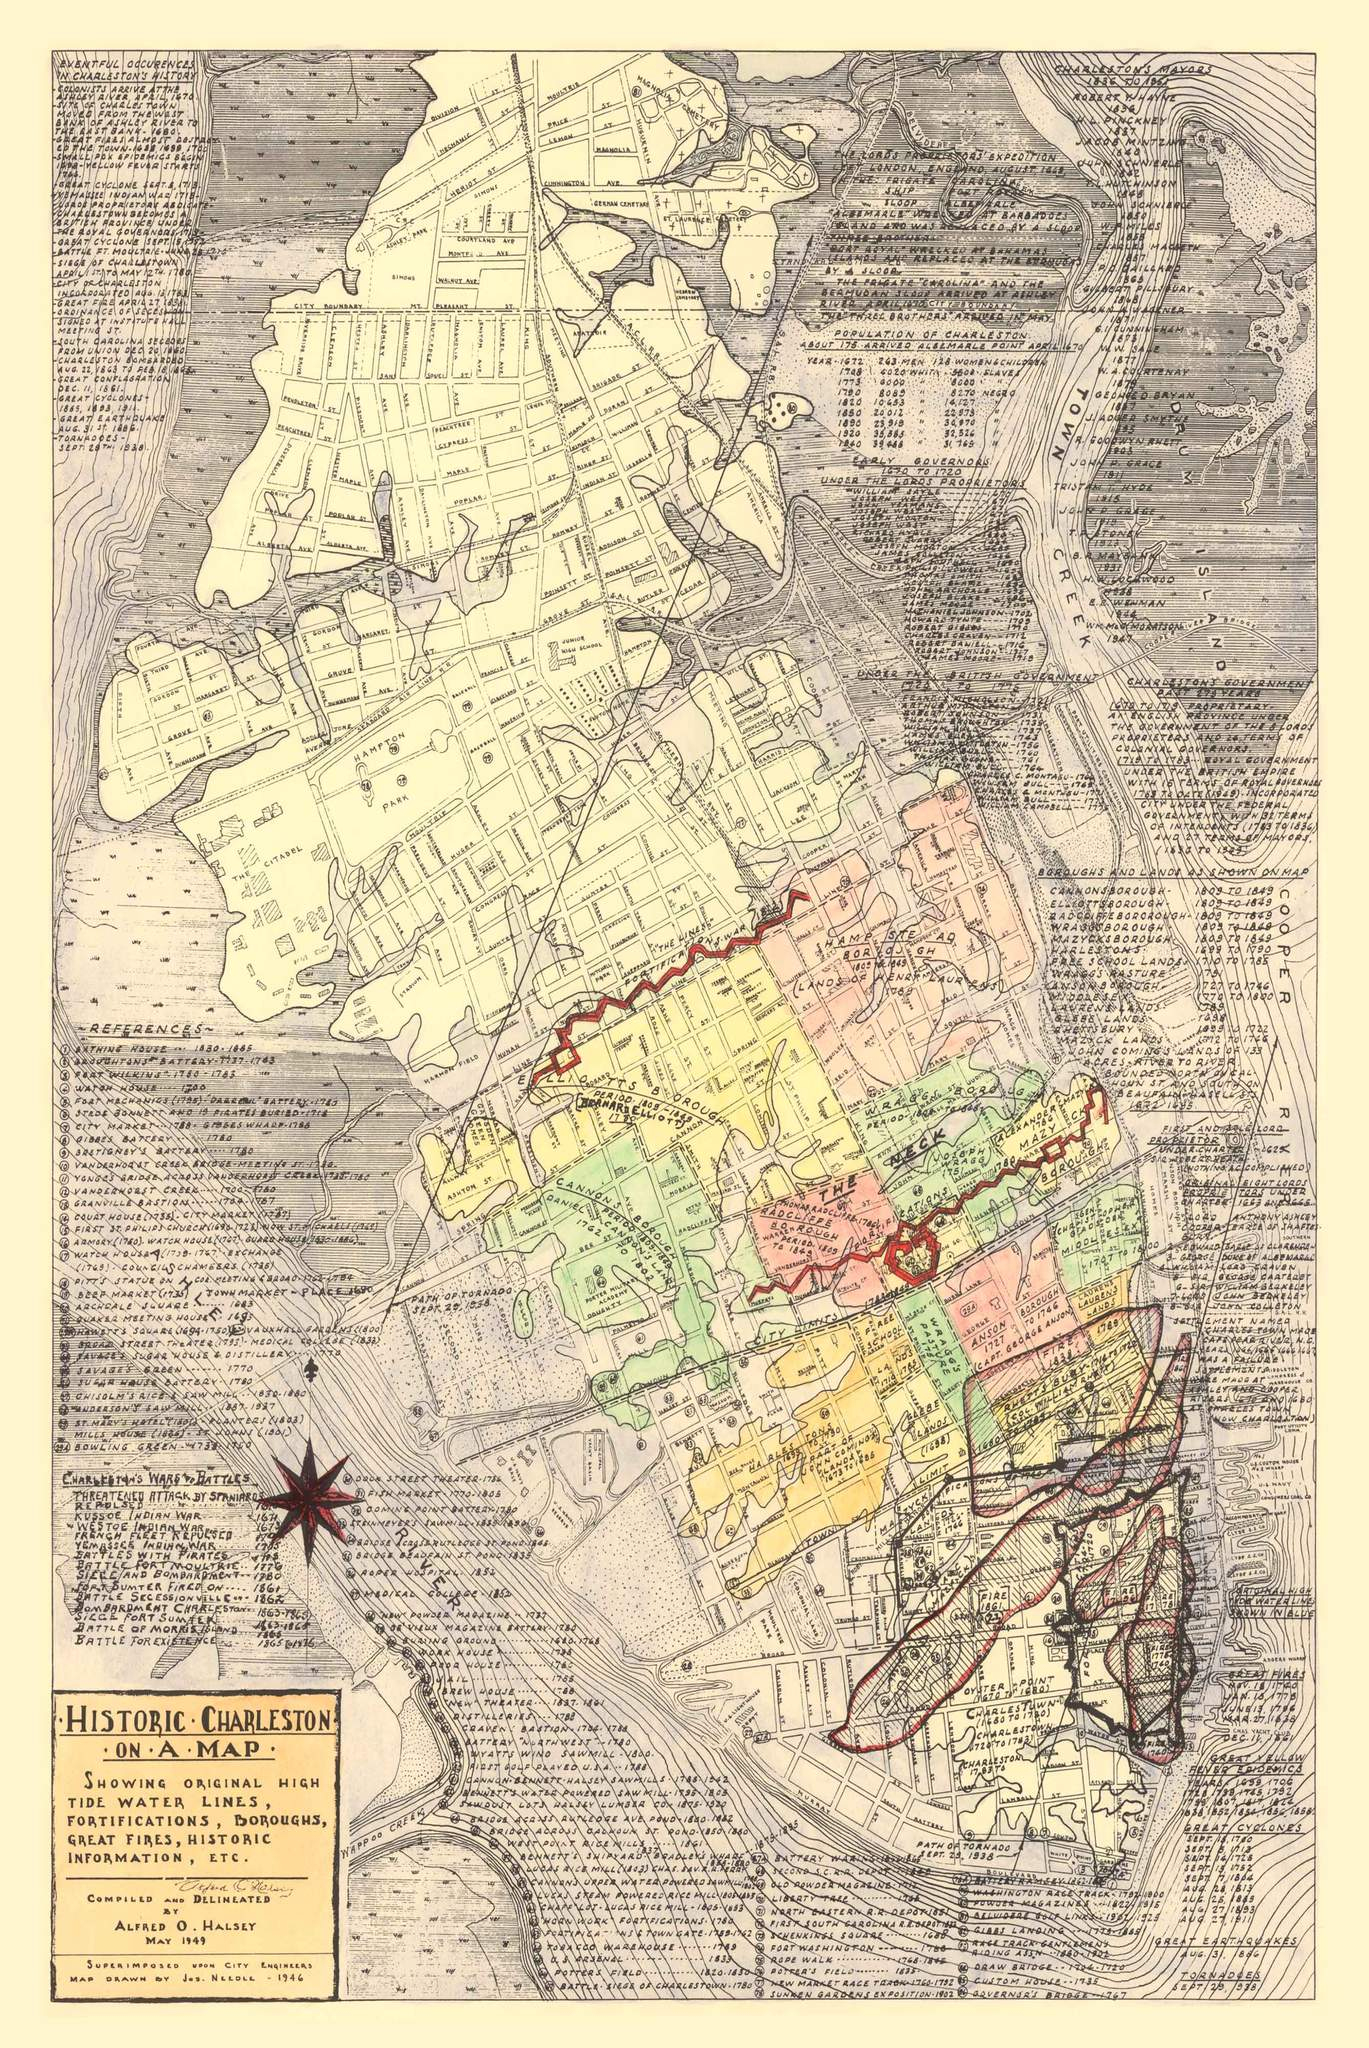 The Halsey Map of Charleston, 1949